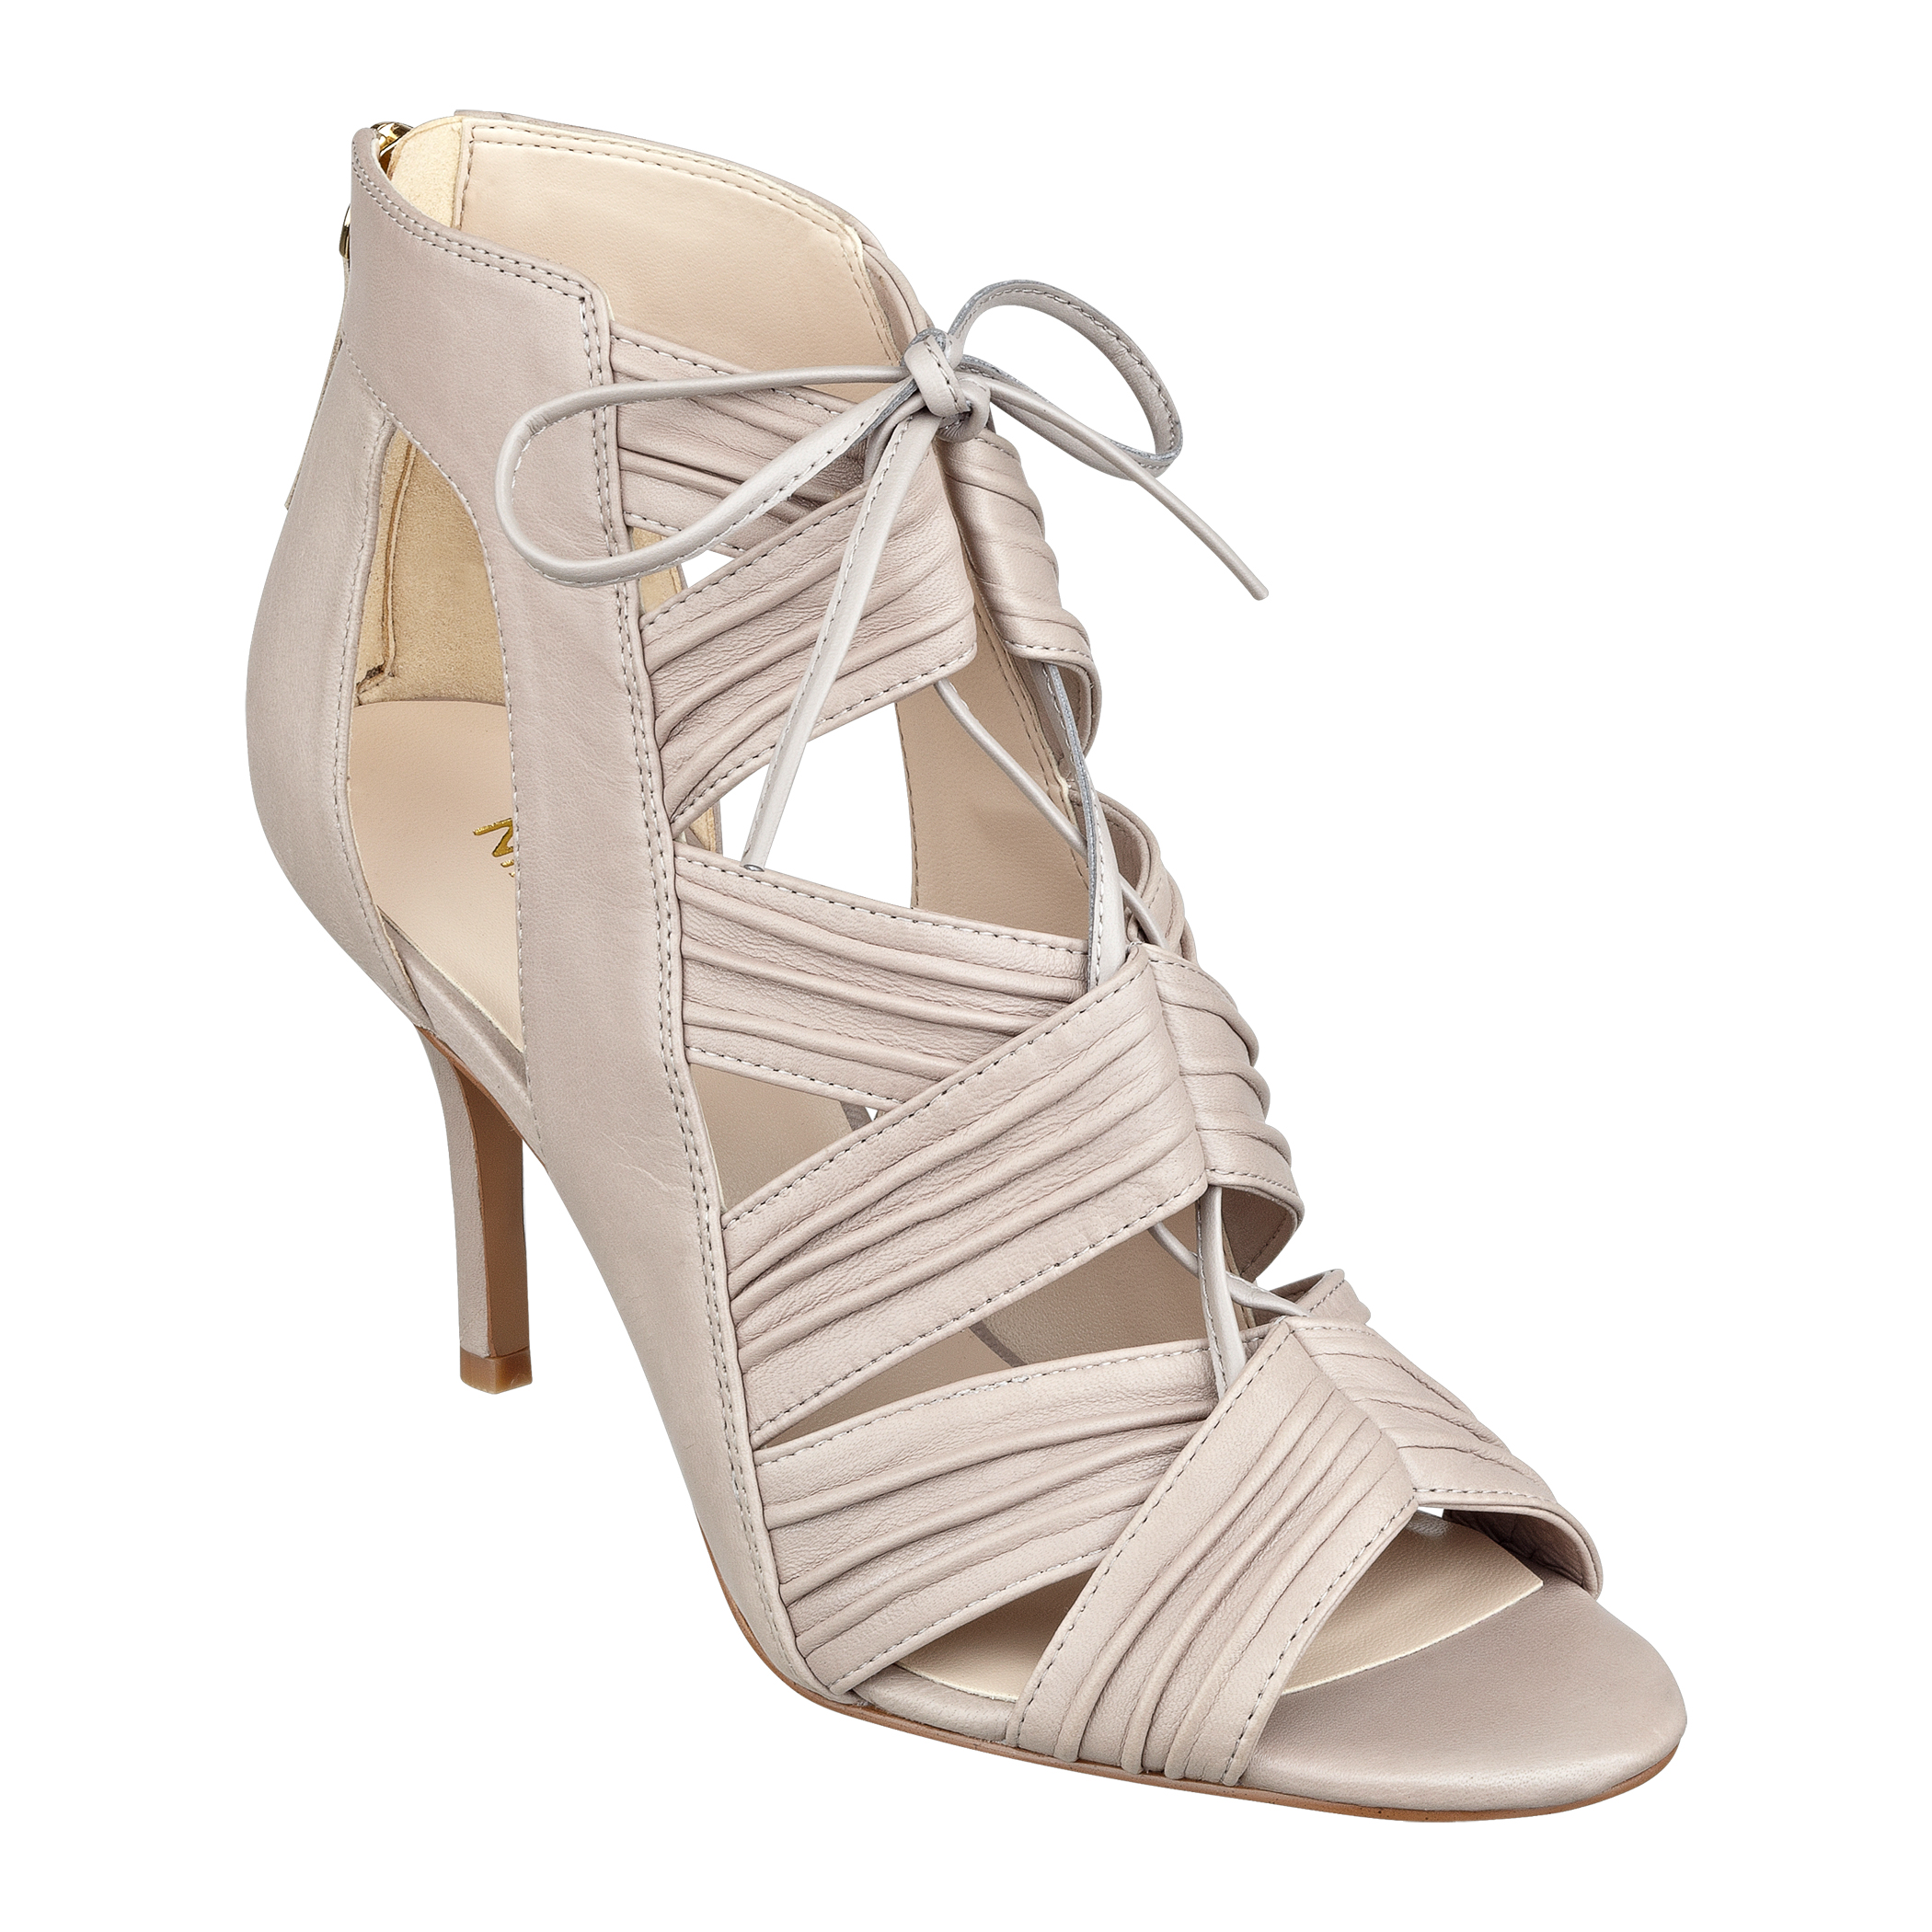 Latest Fashion of Stiletto & Heels Collection for women by Nine West12)